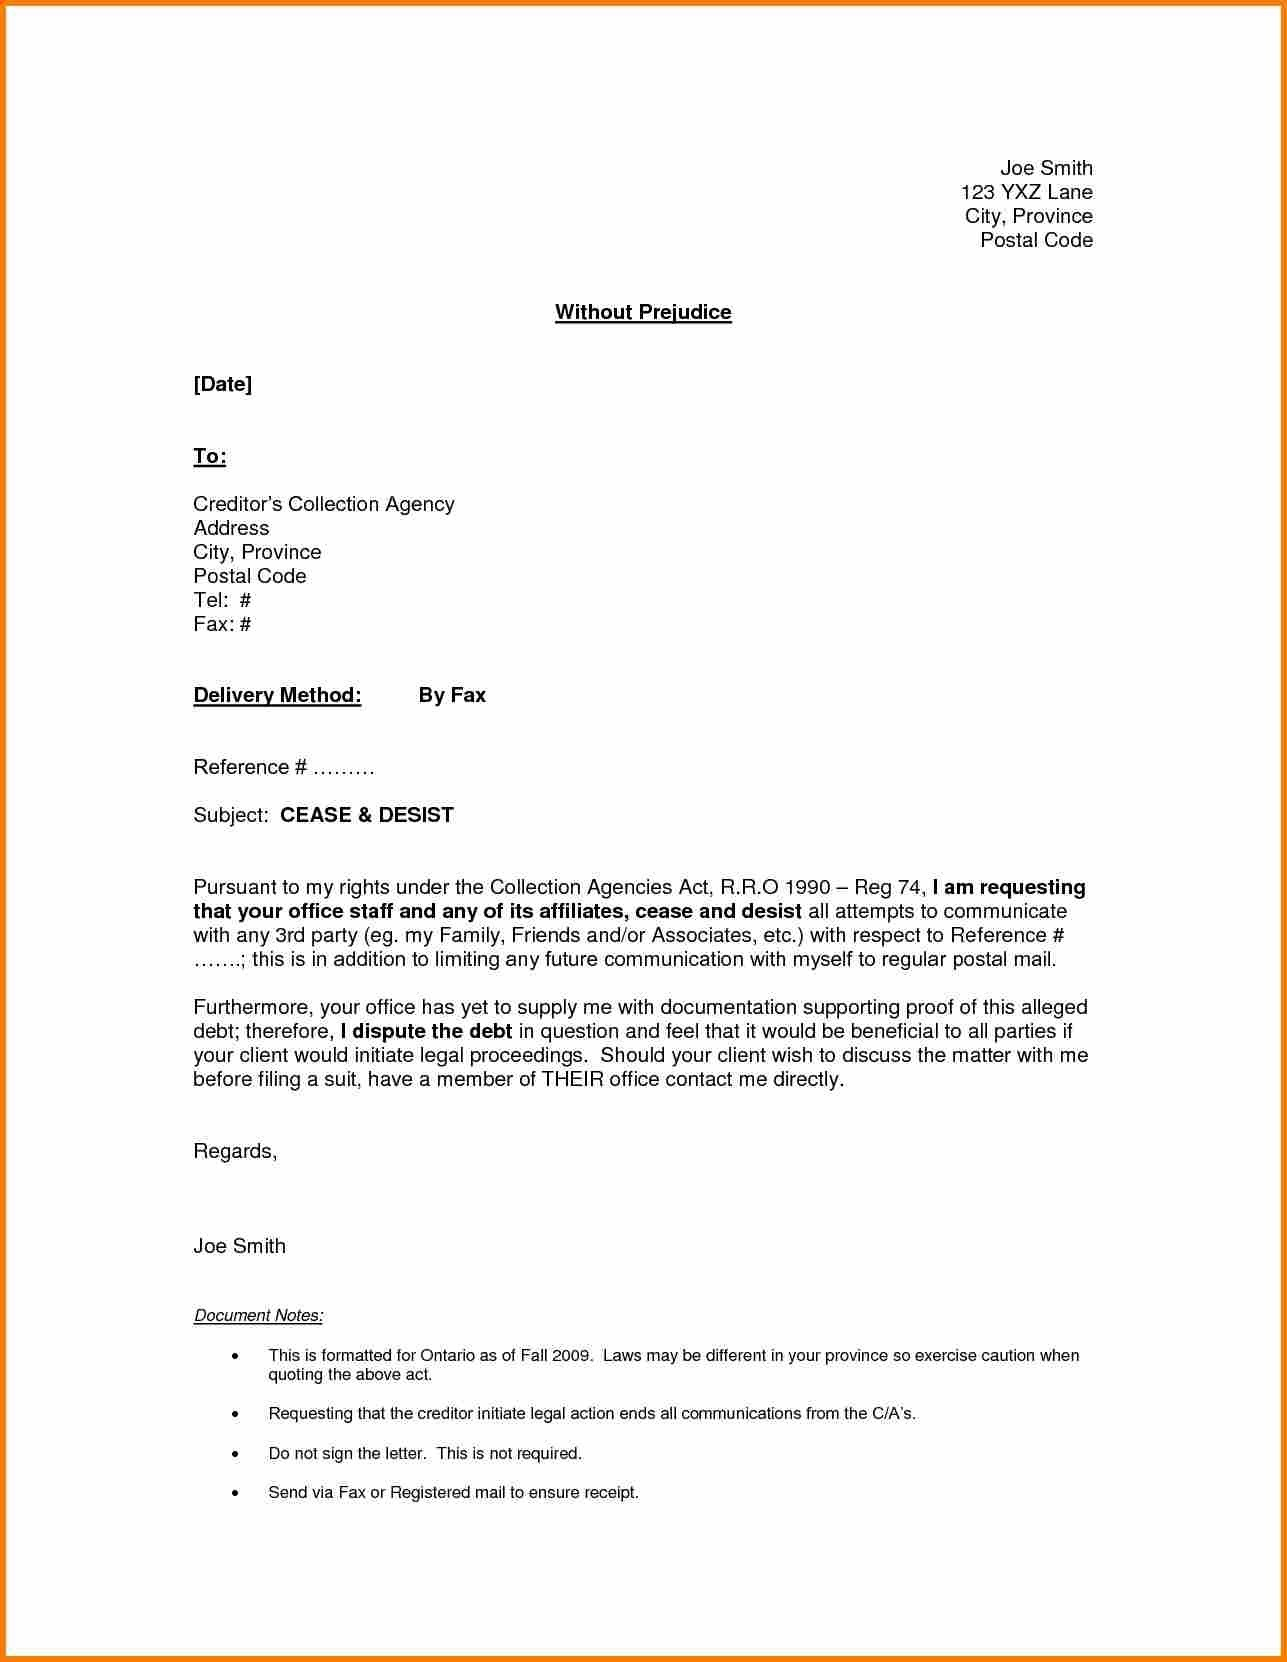 Cease and Desist Letter Template Amazon - Cease and Desist Letter Template for Debt Collectors